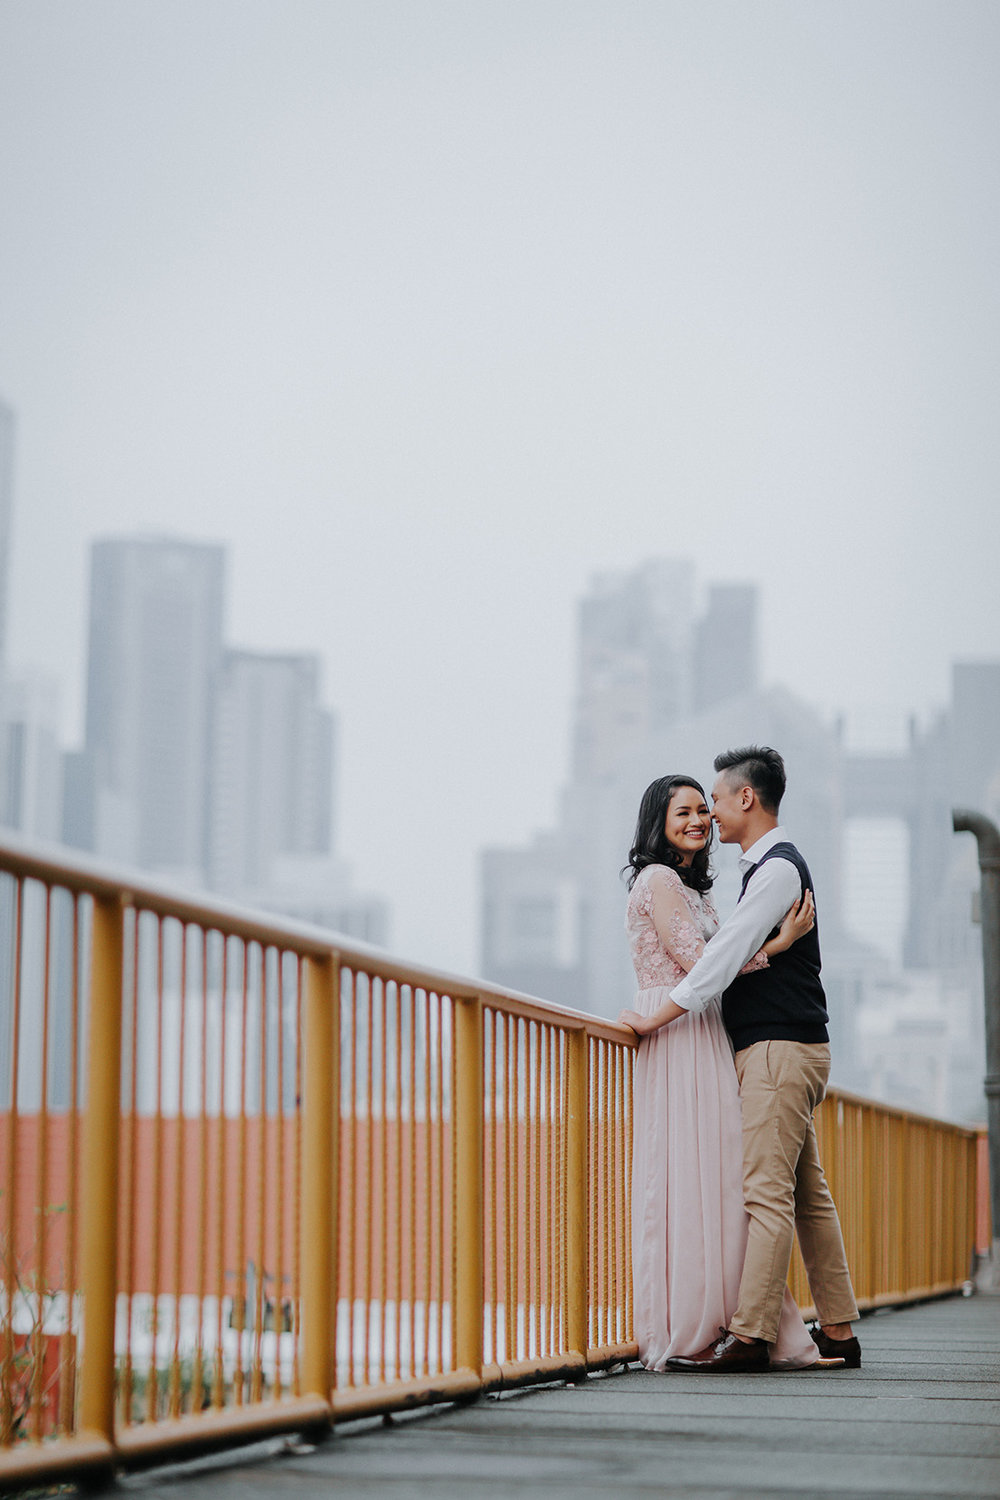 HAFIZ X MELISA PW LOW RES15.jpg